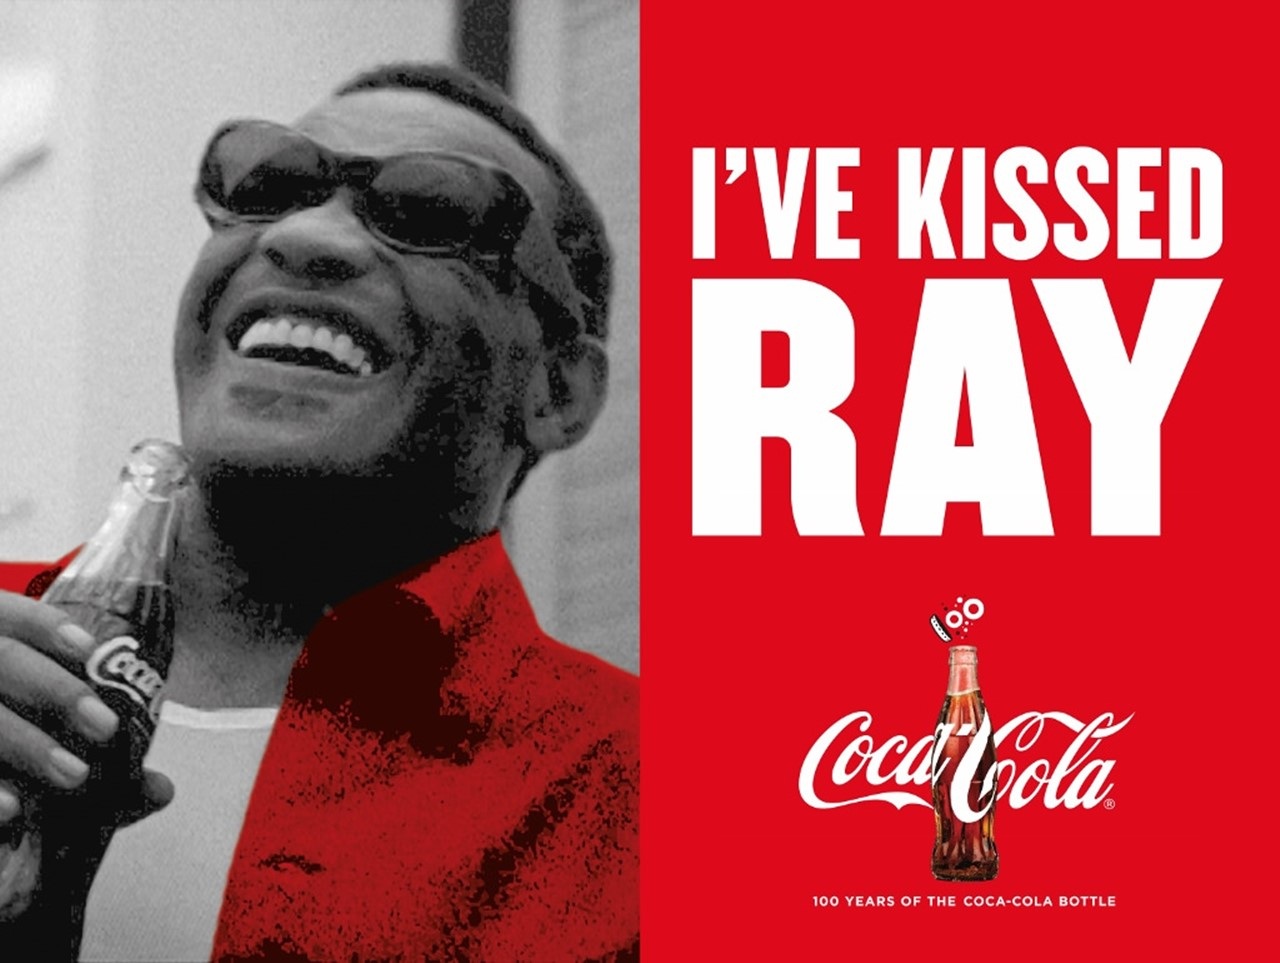 코카콜라 bottle 100주년 광고_kissed_ray_charles.jpg